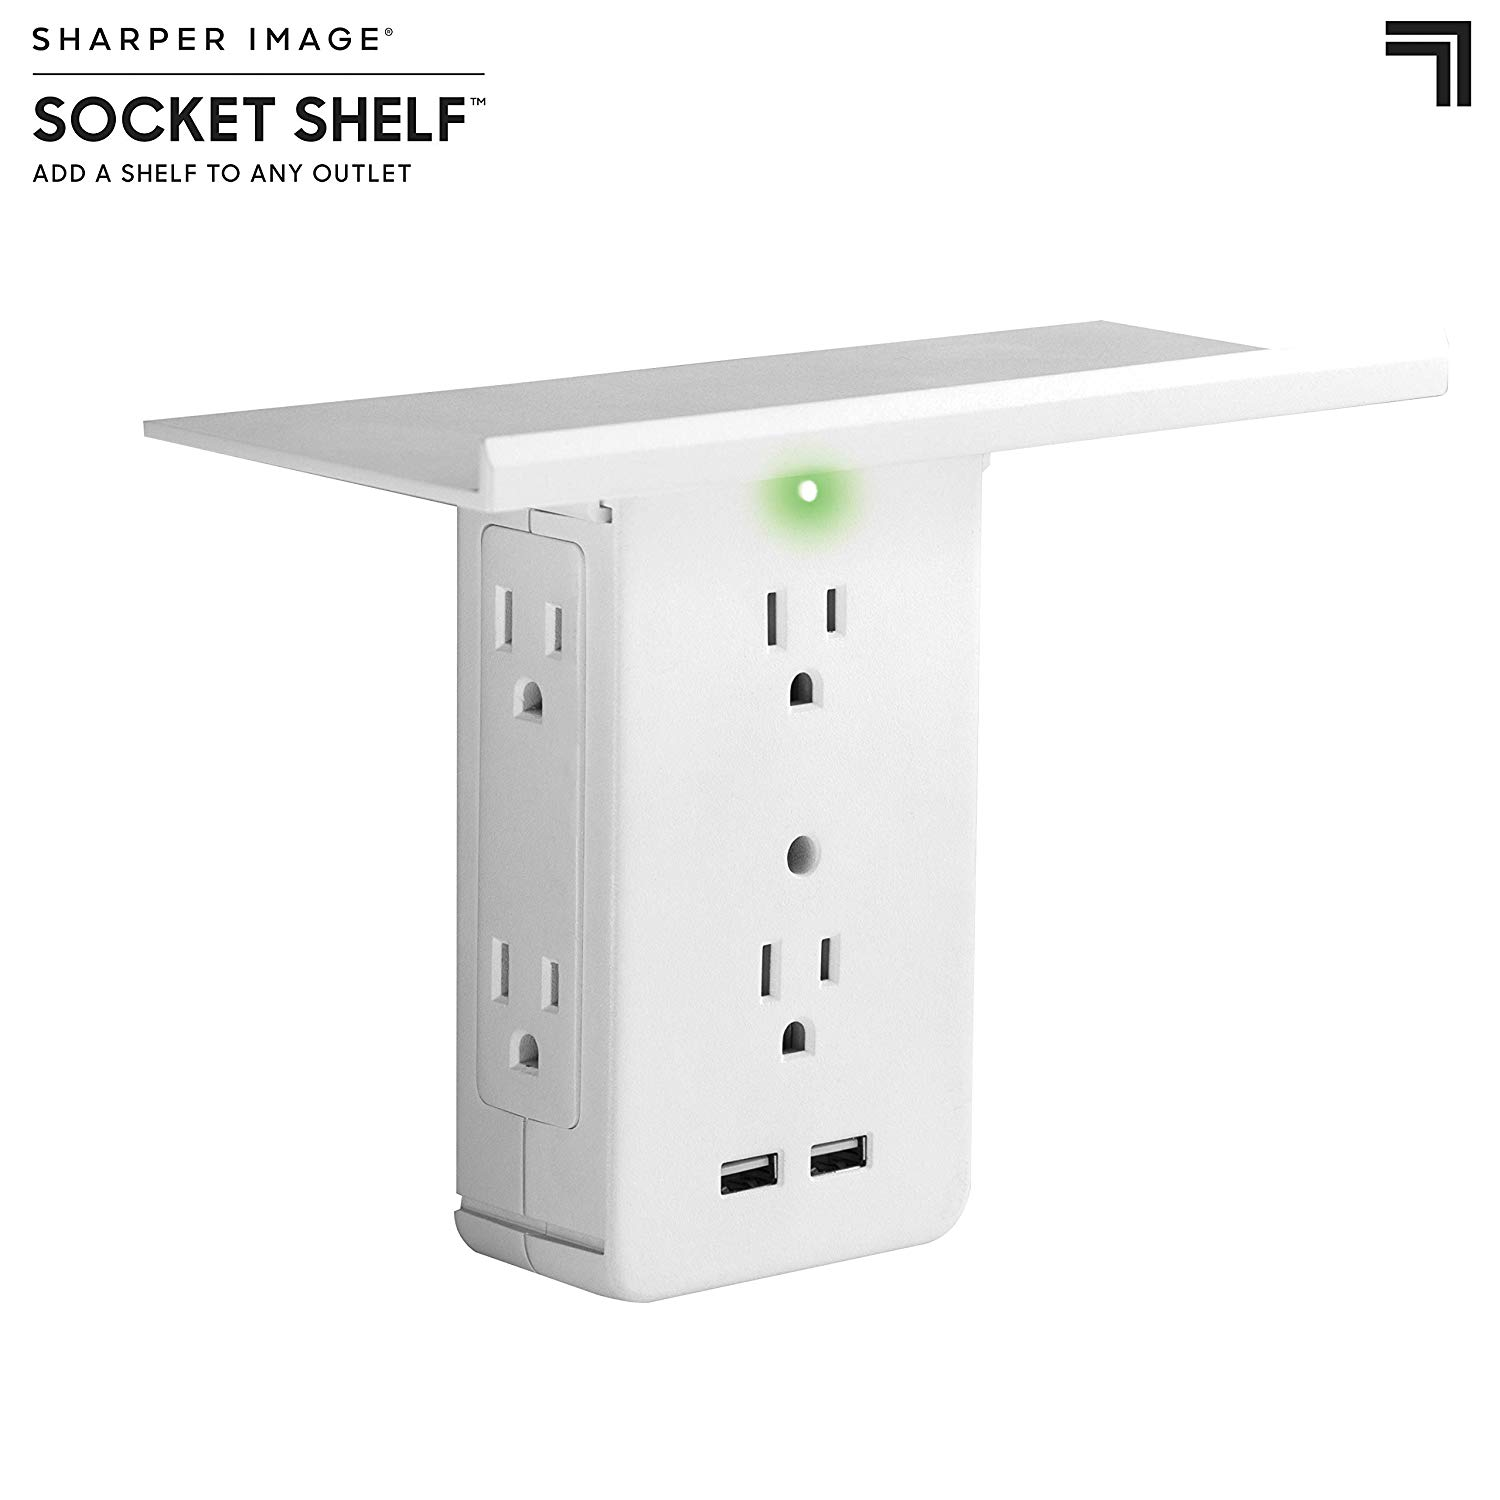 Socket Shelf 8-Port Wall Outlet USB Charger